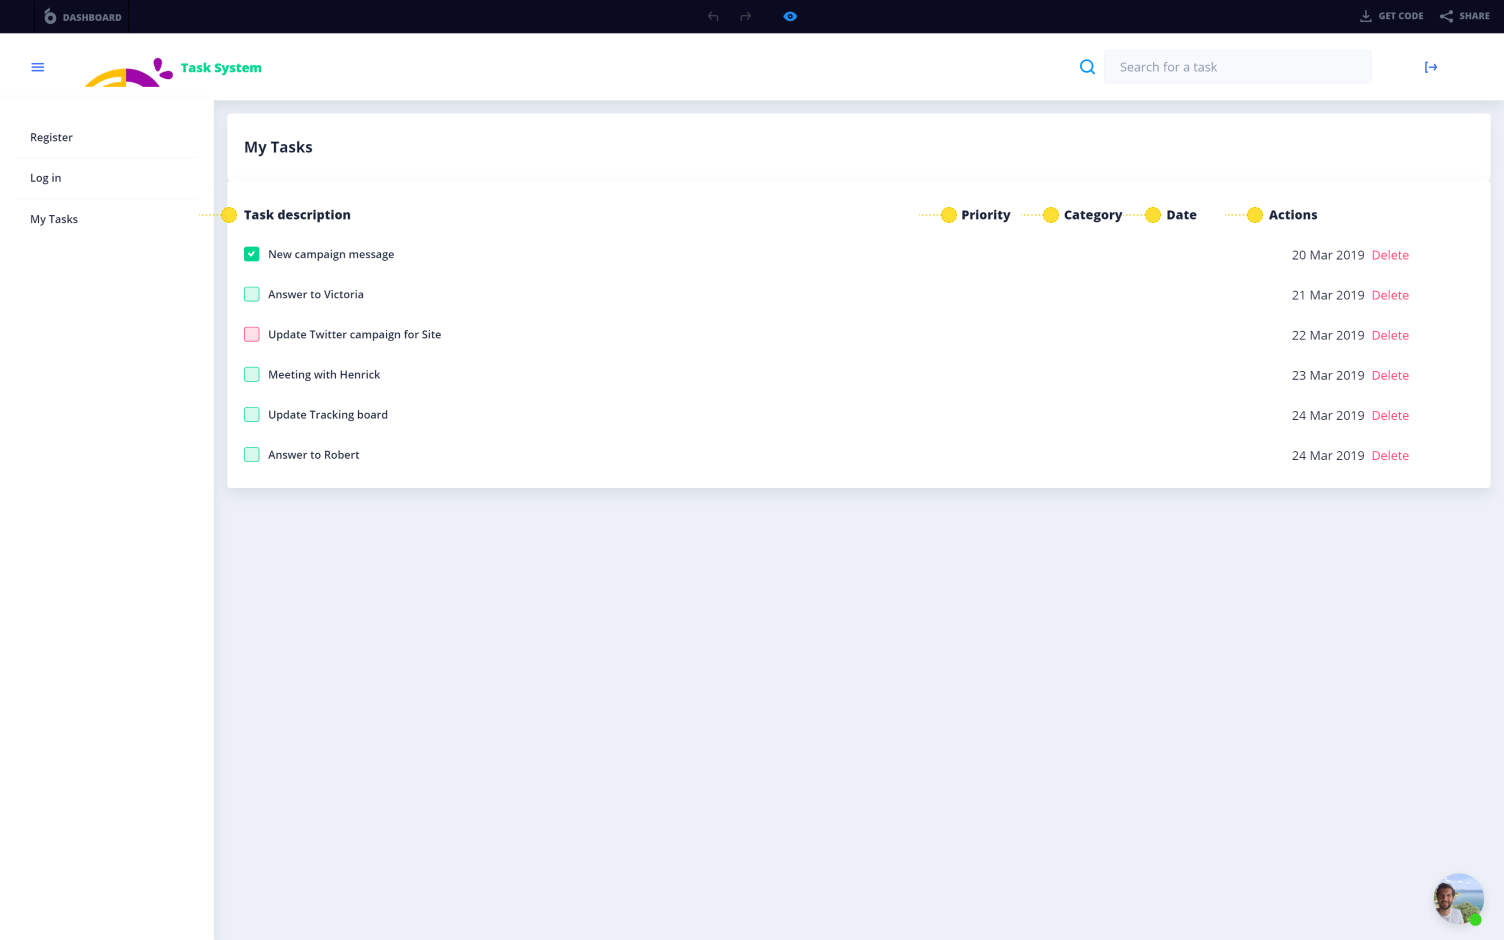 A task management system allowing you to track tasks and see task description